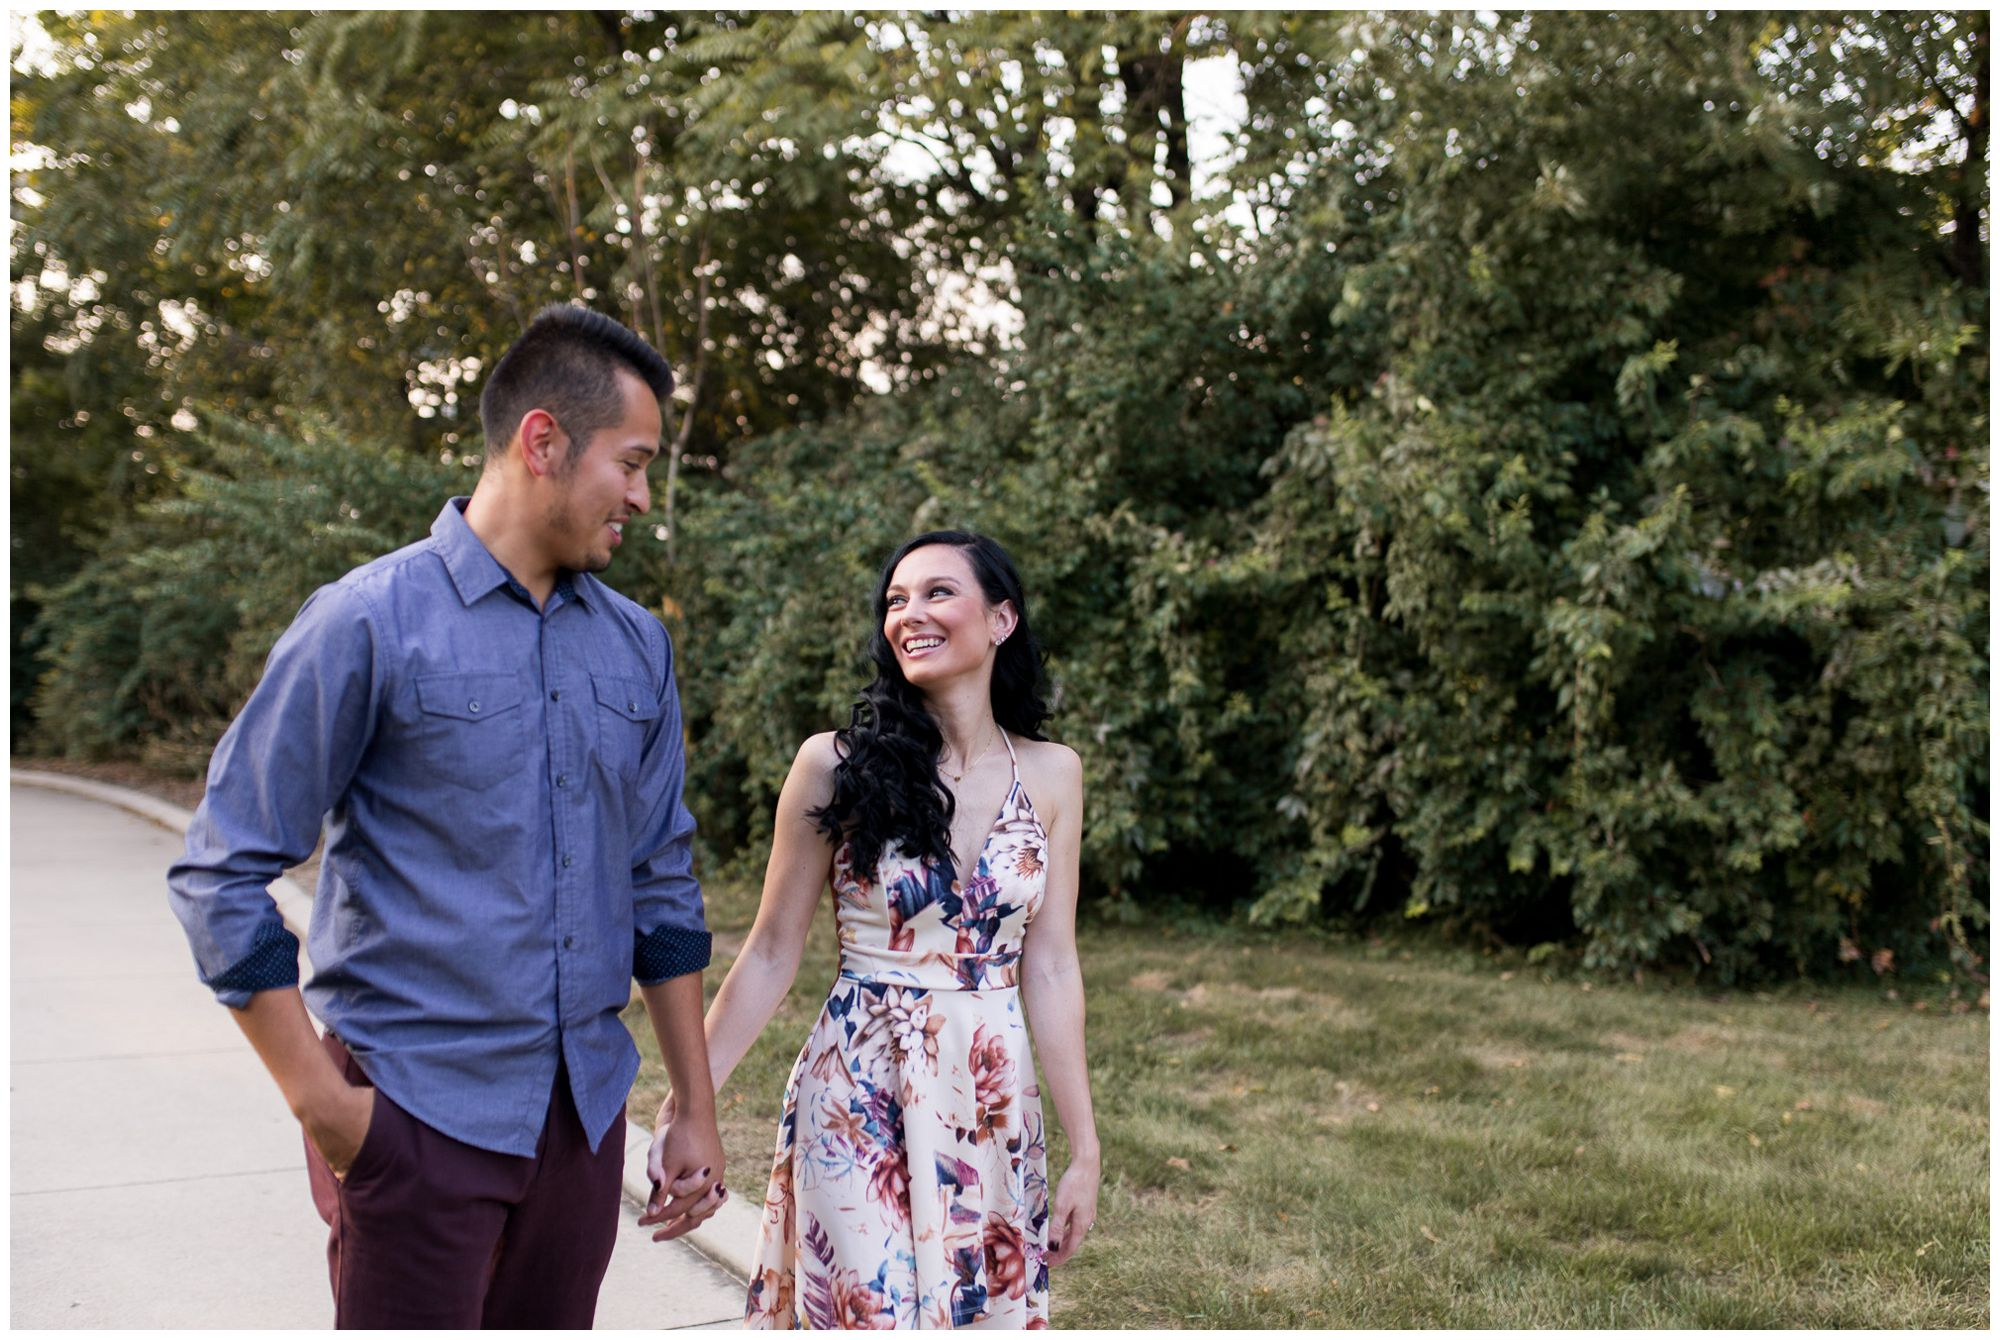 couple walks holding hands during engagement session at Headwaters Park in Fort Wayne Indiana